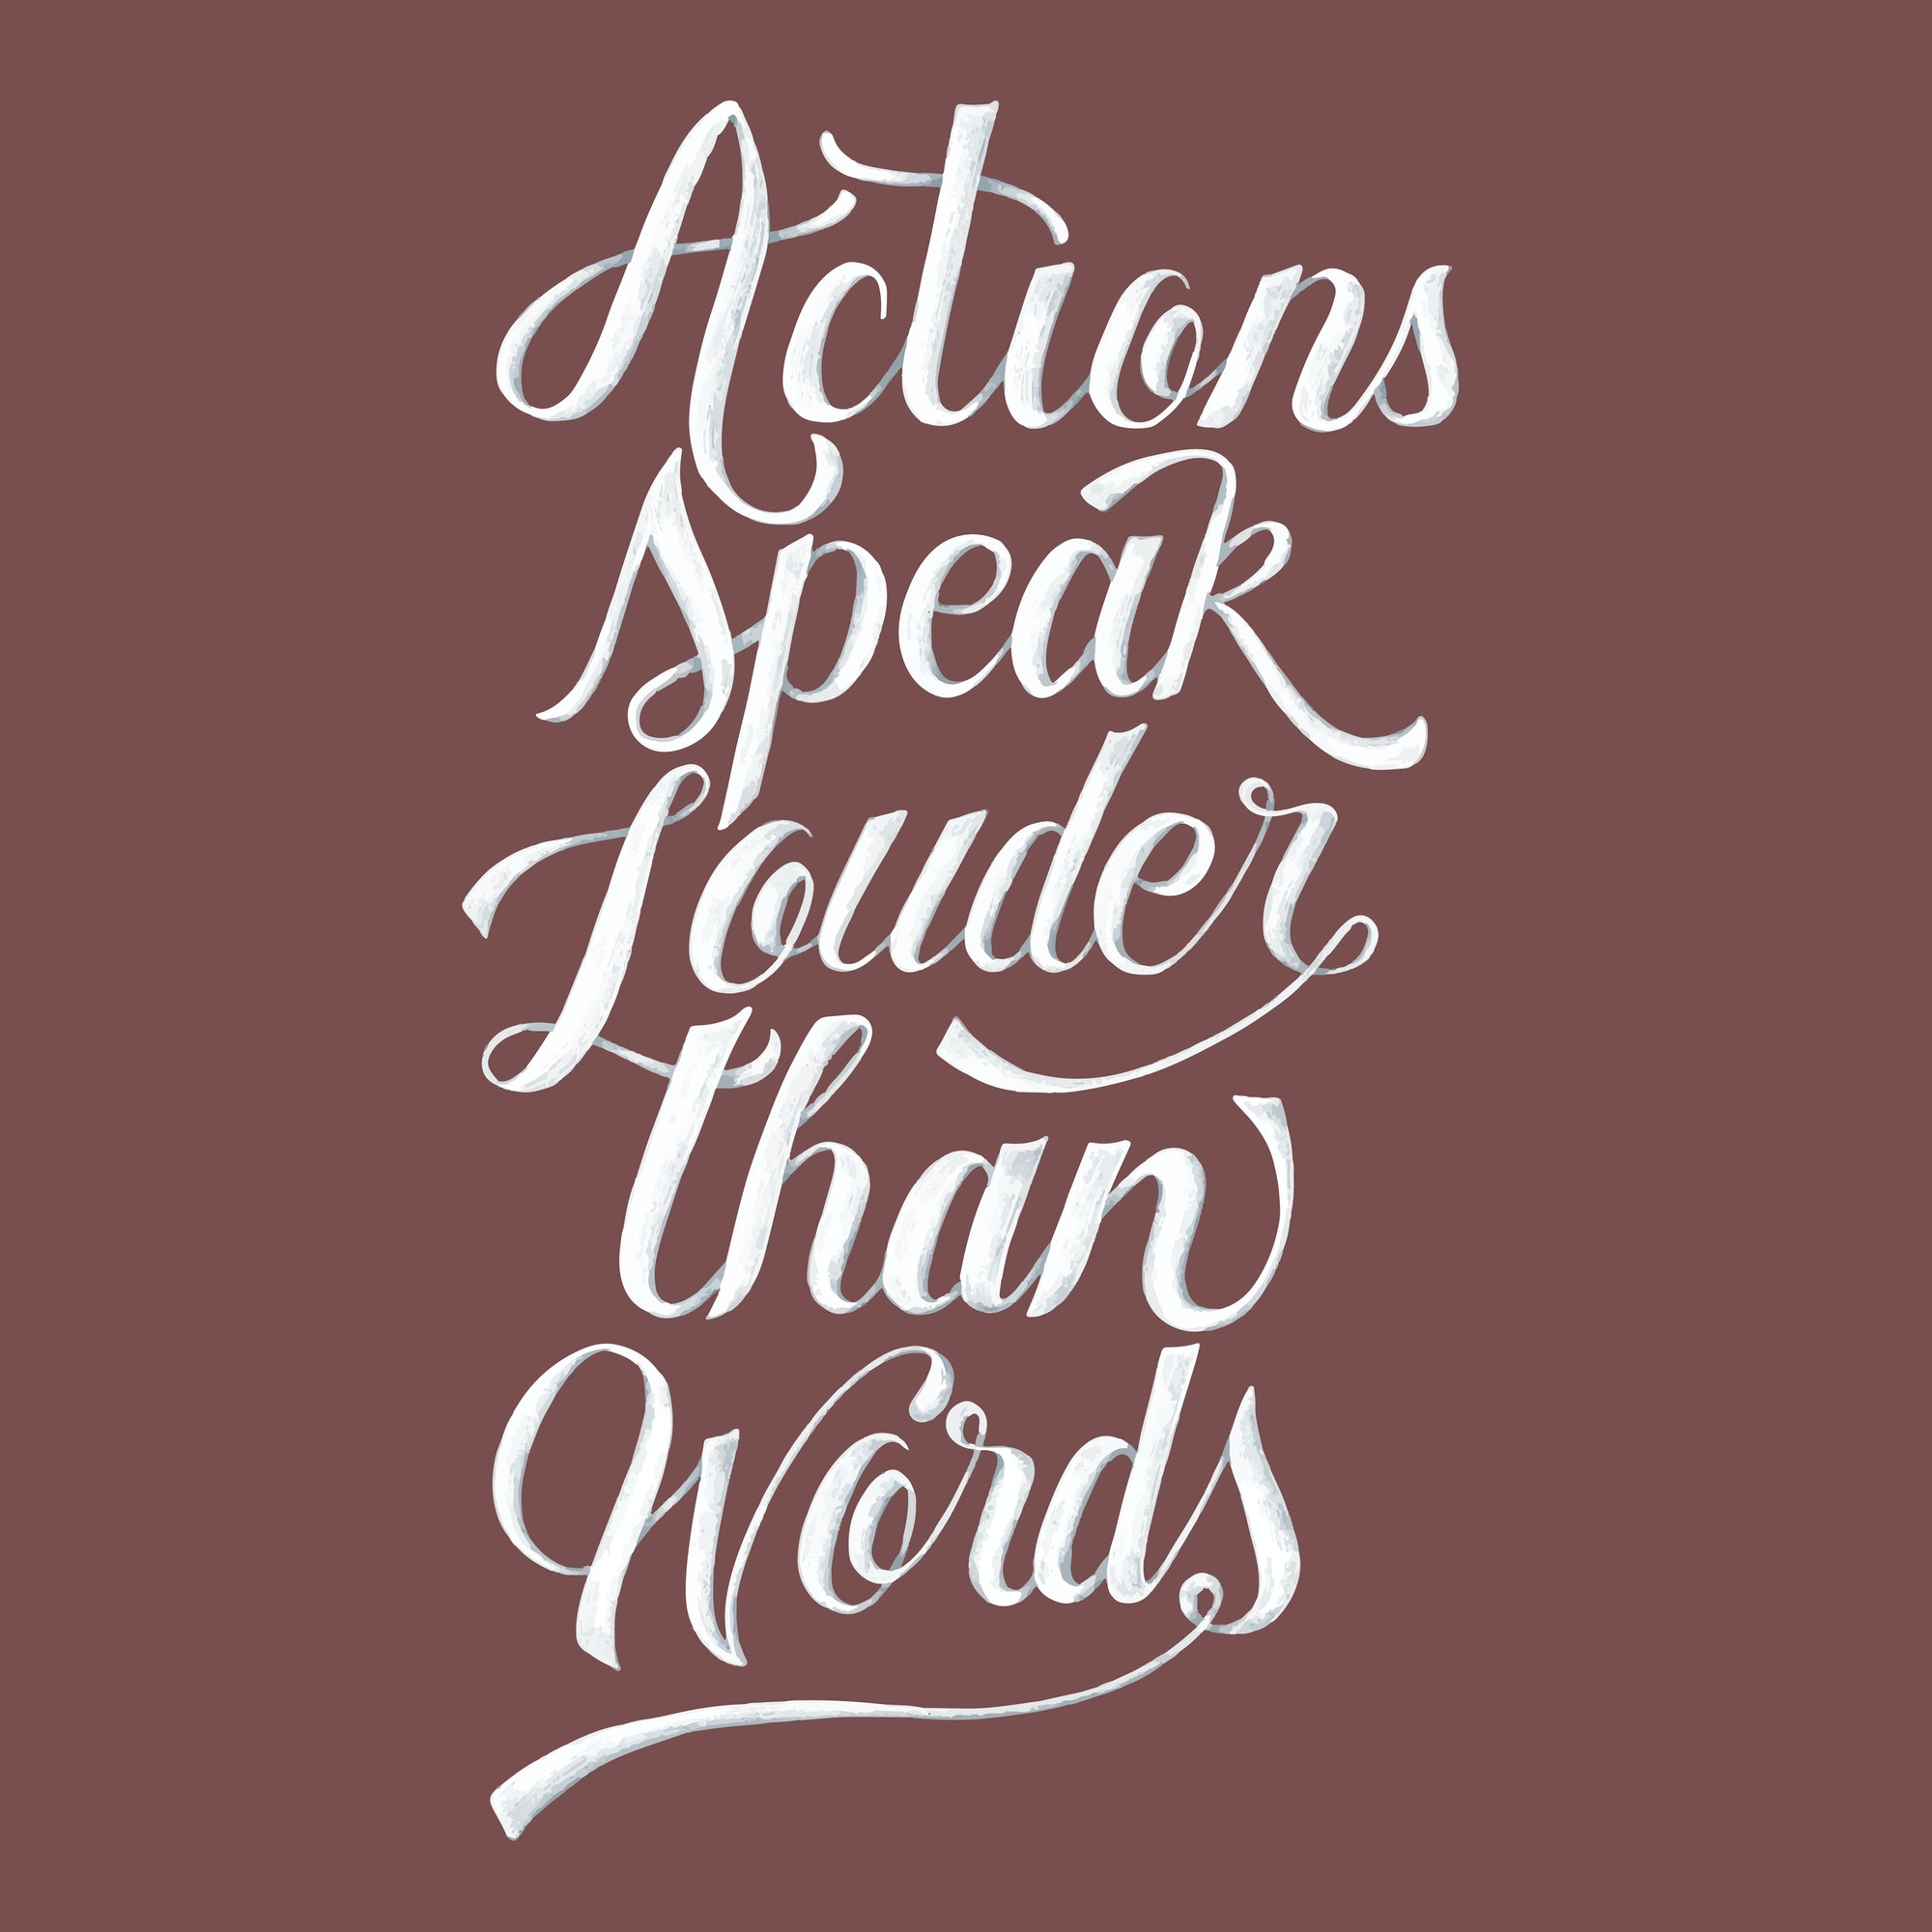 Actions speak louder than words illustration